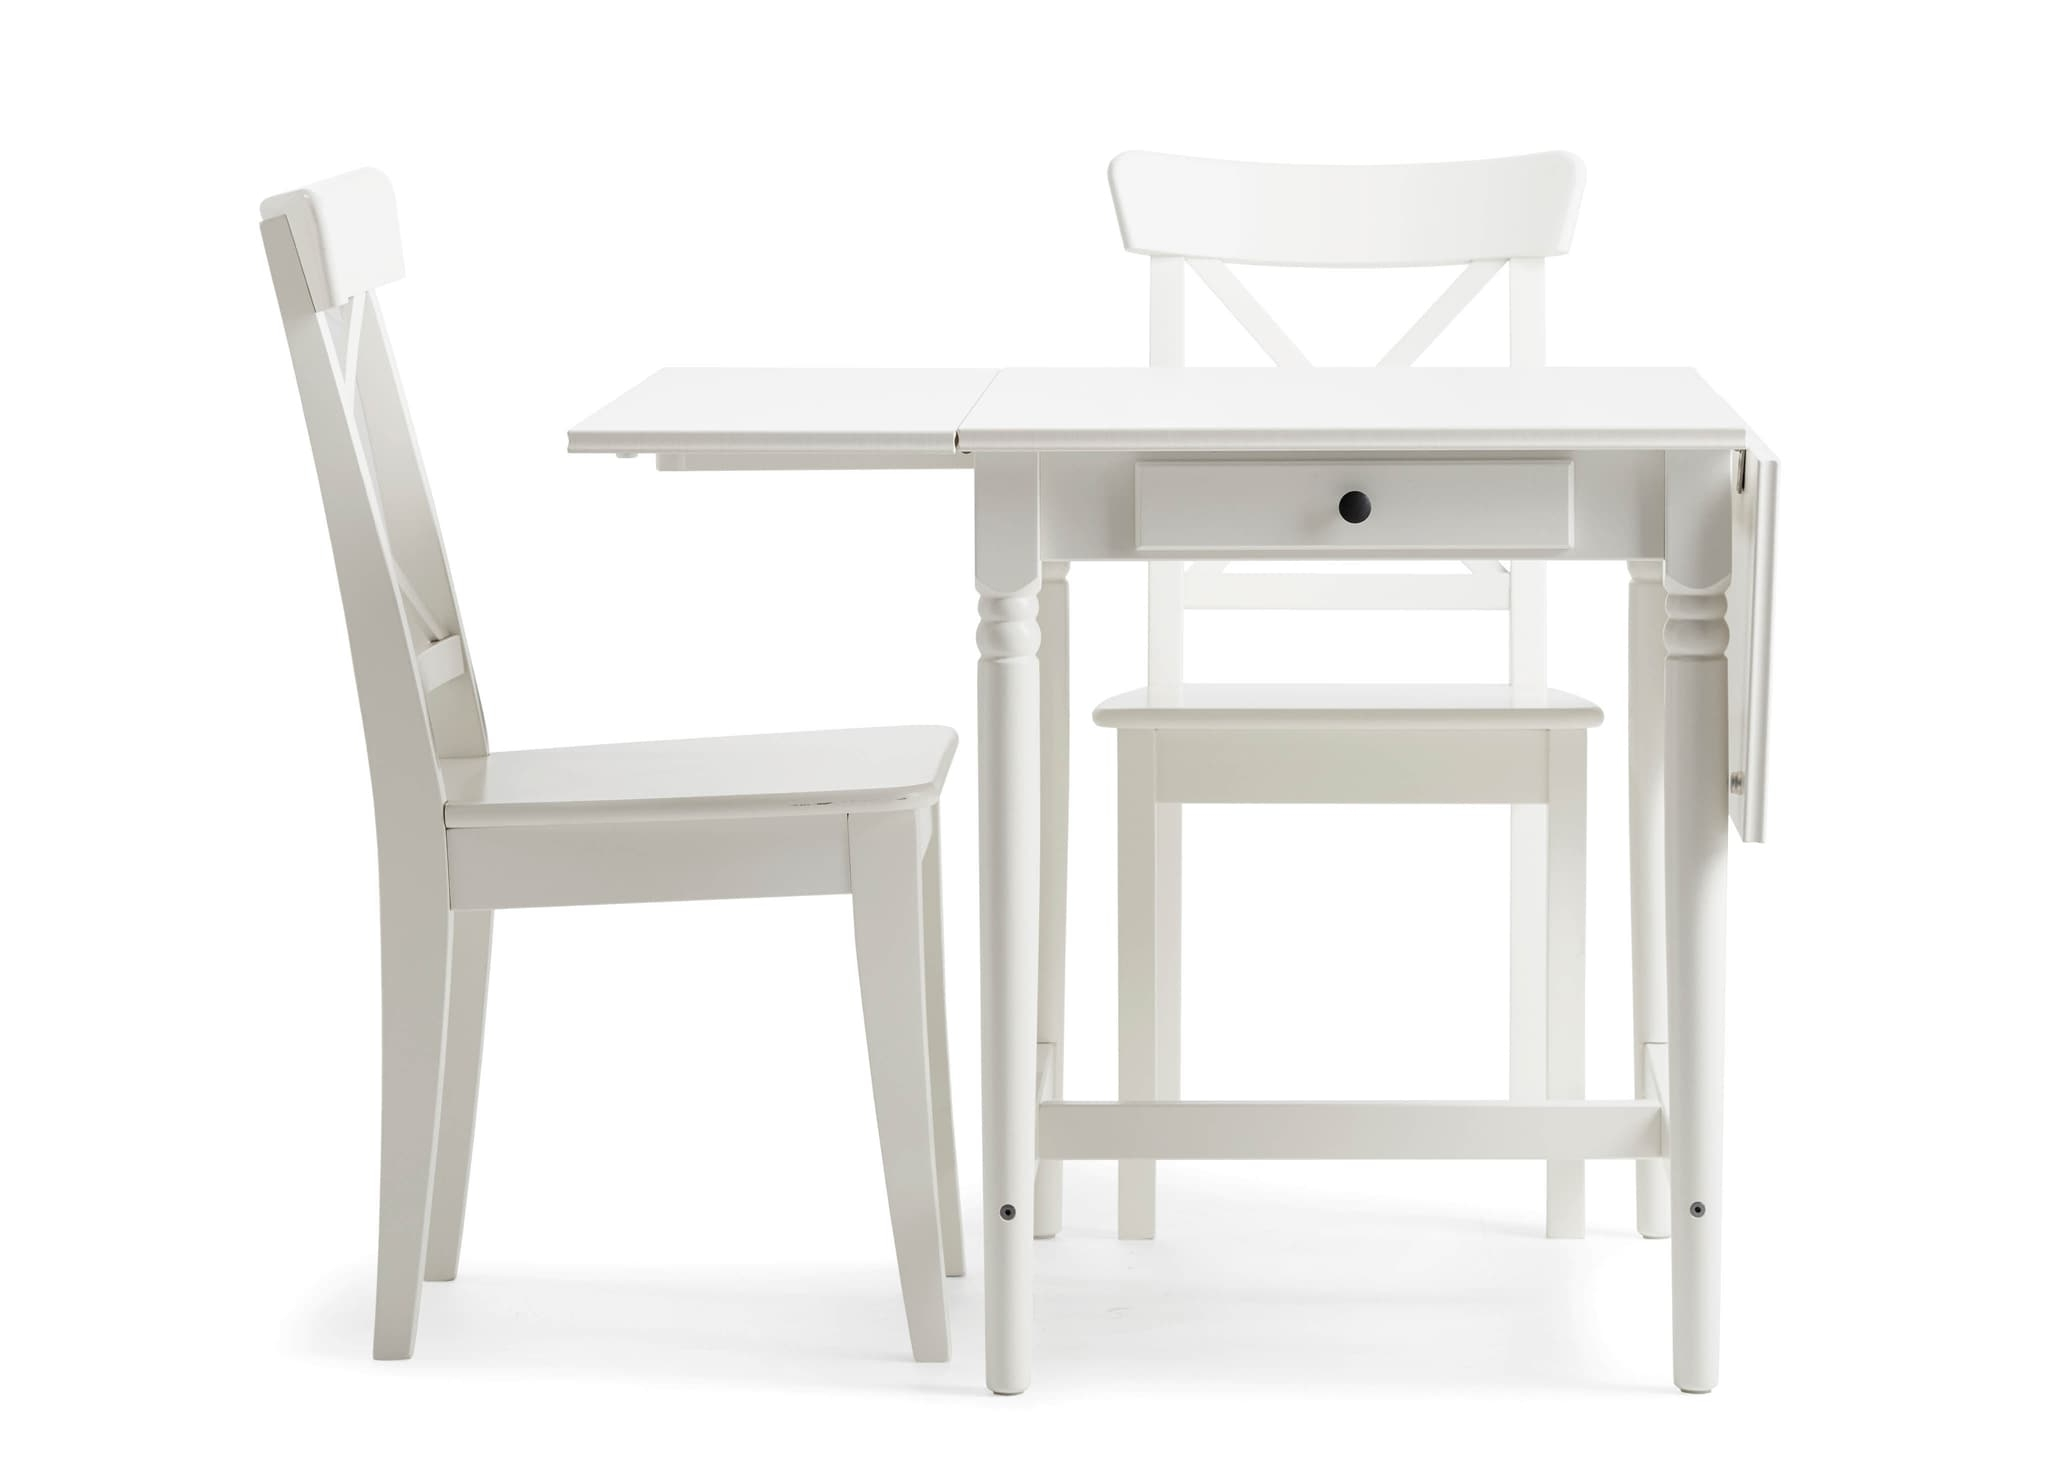 Ikea Intended For Small Dining Tables And Chairs (View 15 of 25)